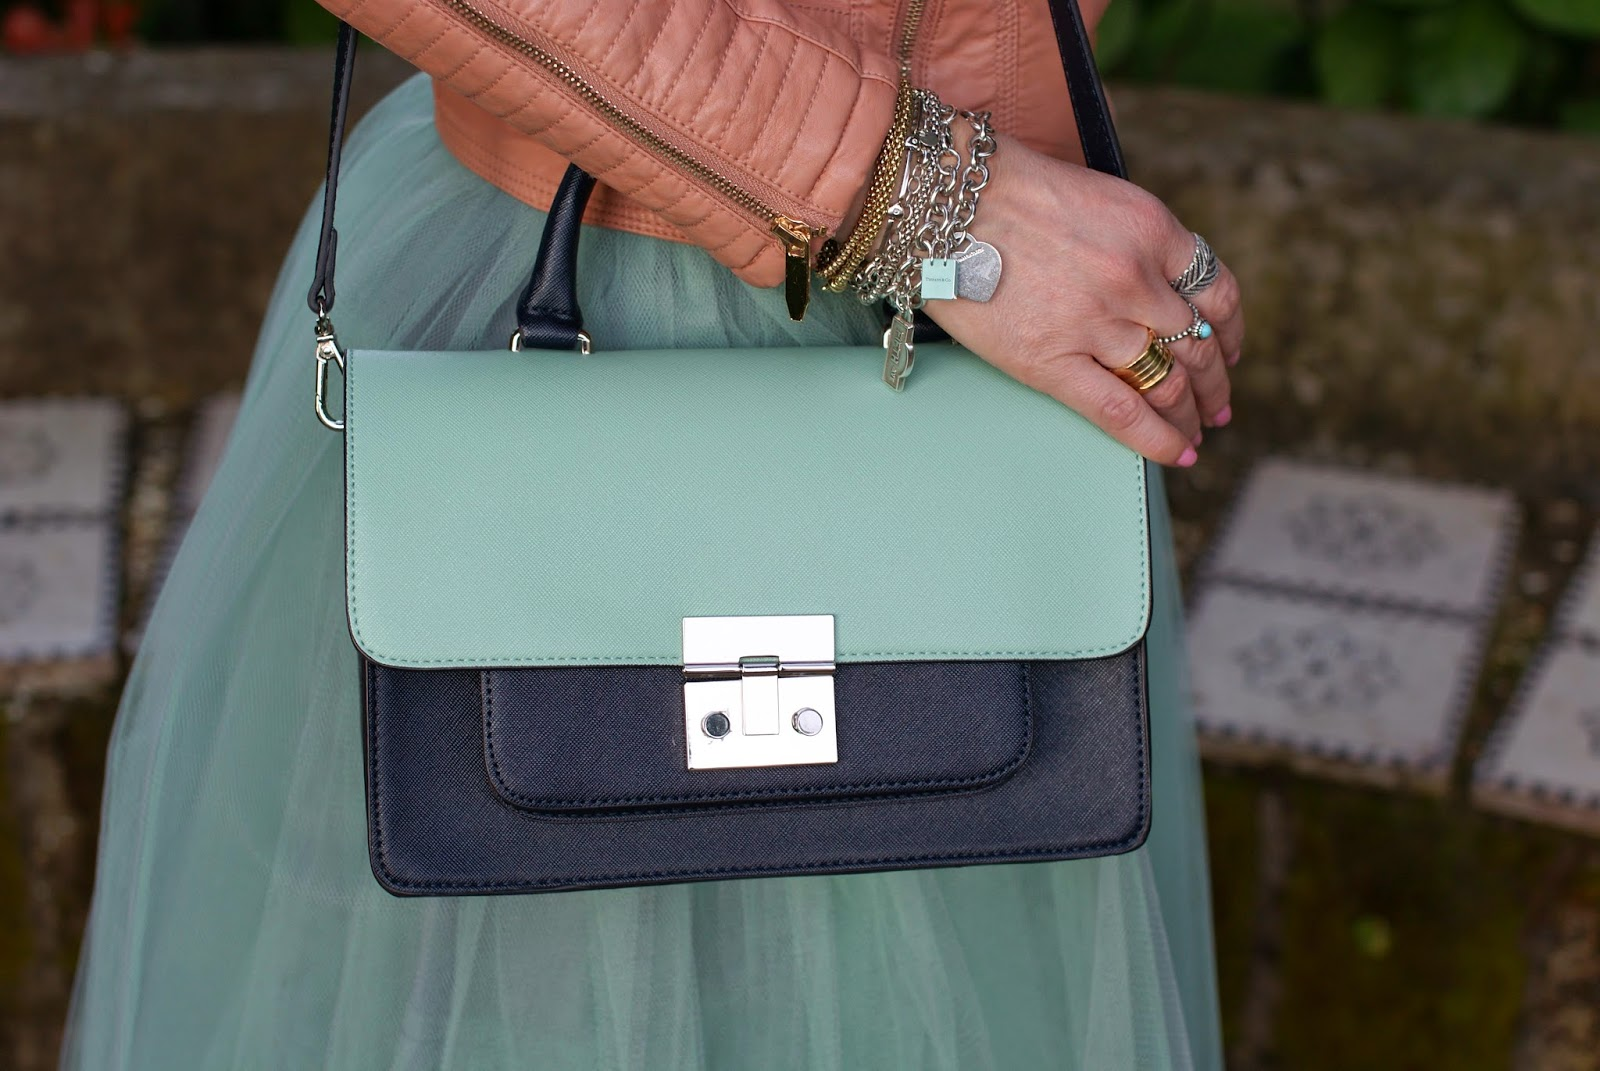 Zara bicolor bag, Miu Miu inspired bag, bvlgari ring, Fashion and Cookies, fashion blogger